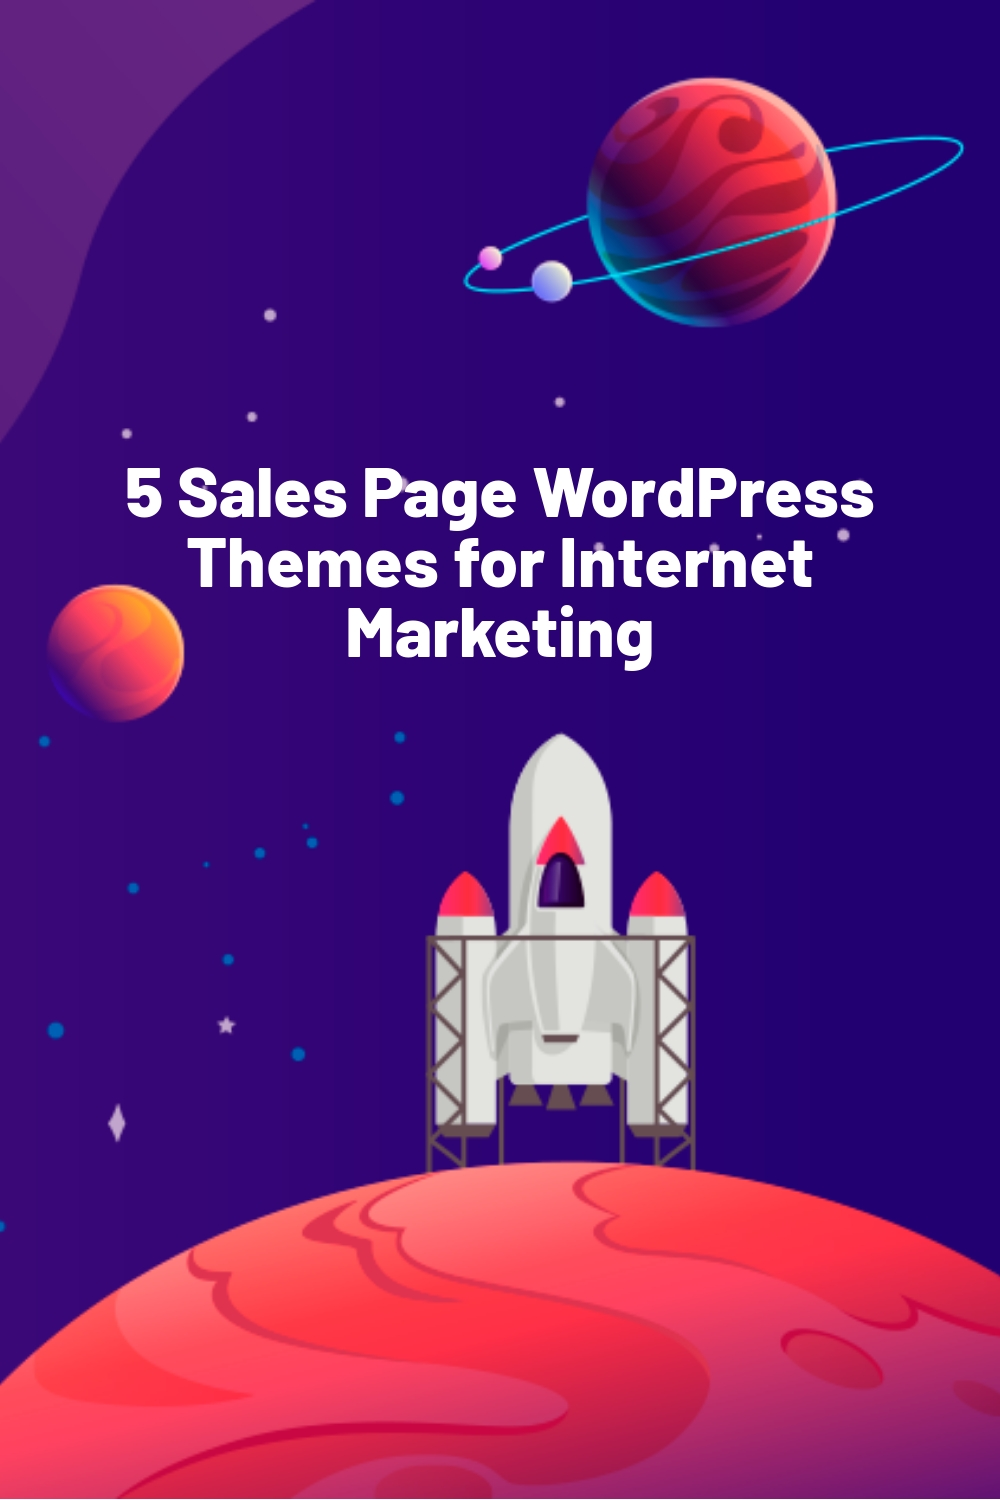 5 Sales Page WordPress Themes for Internet Marketing